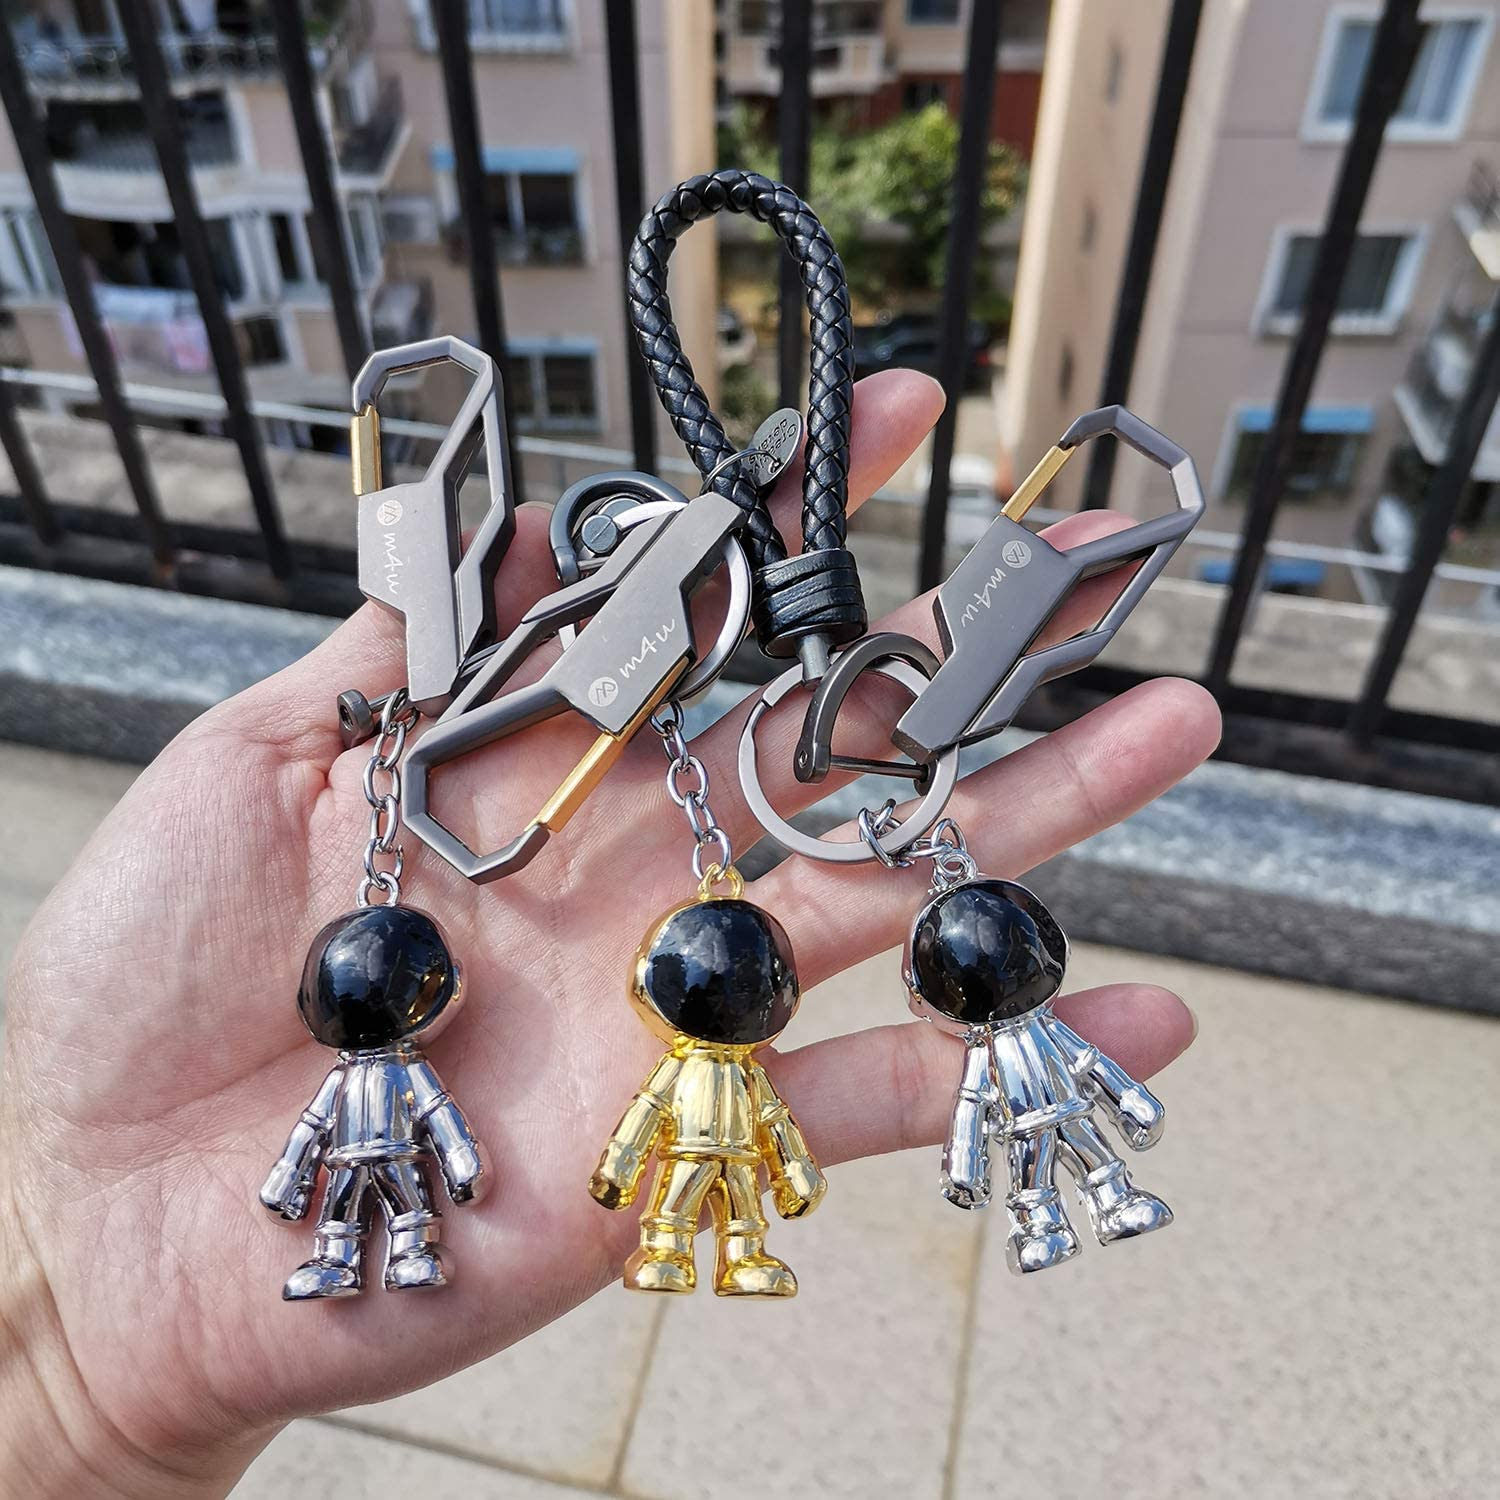 Genuine Leather Car Key Chain Cute Astronaut Keychain Rings Pendant for Crafts Space Robot keychain Gifts for Men and Women